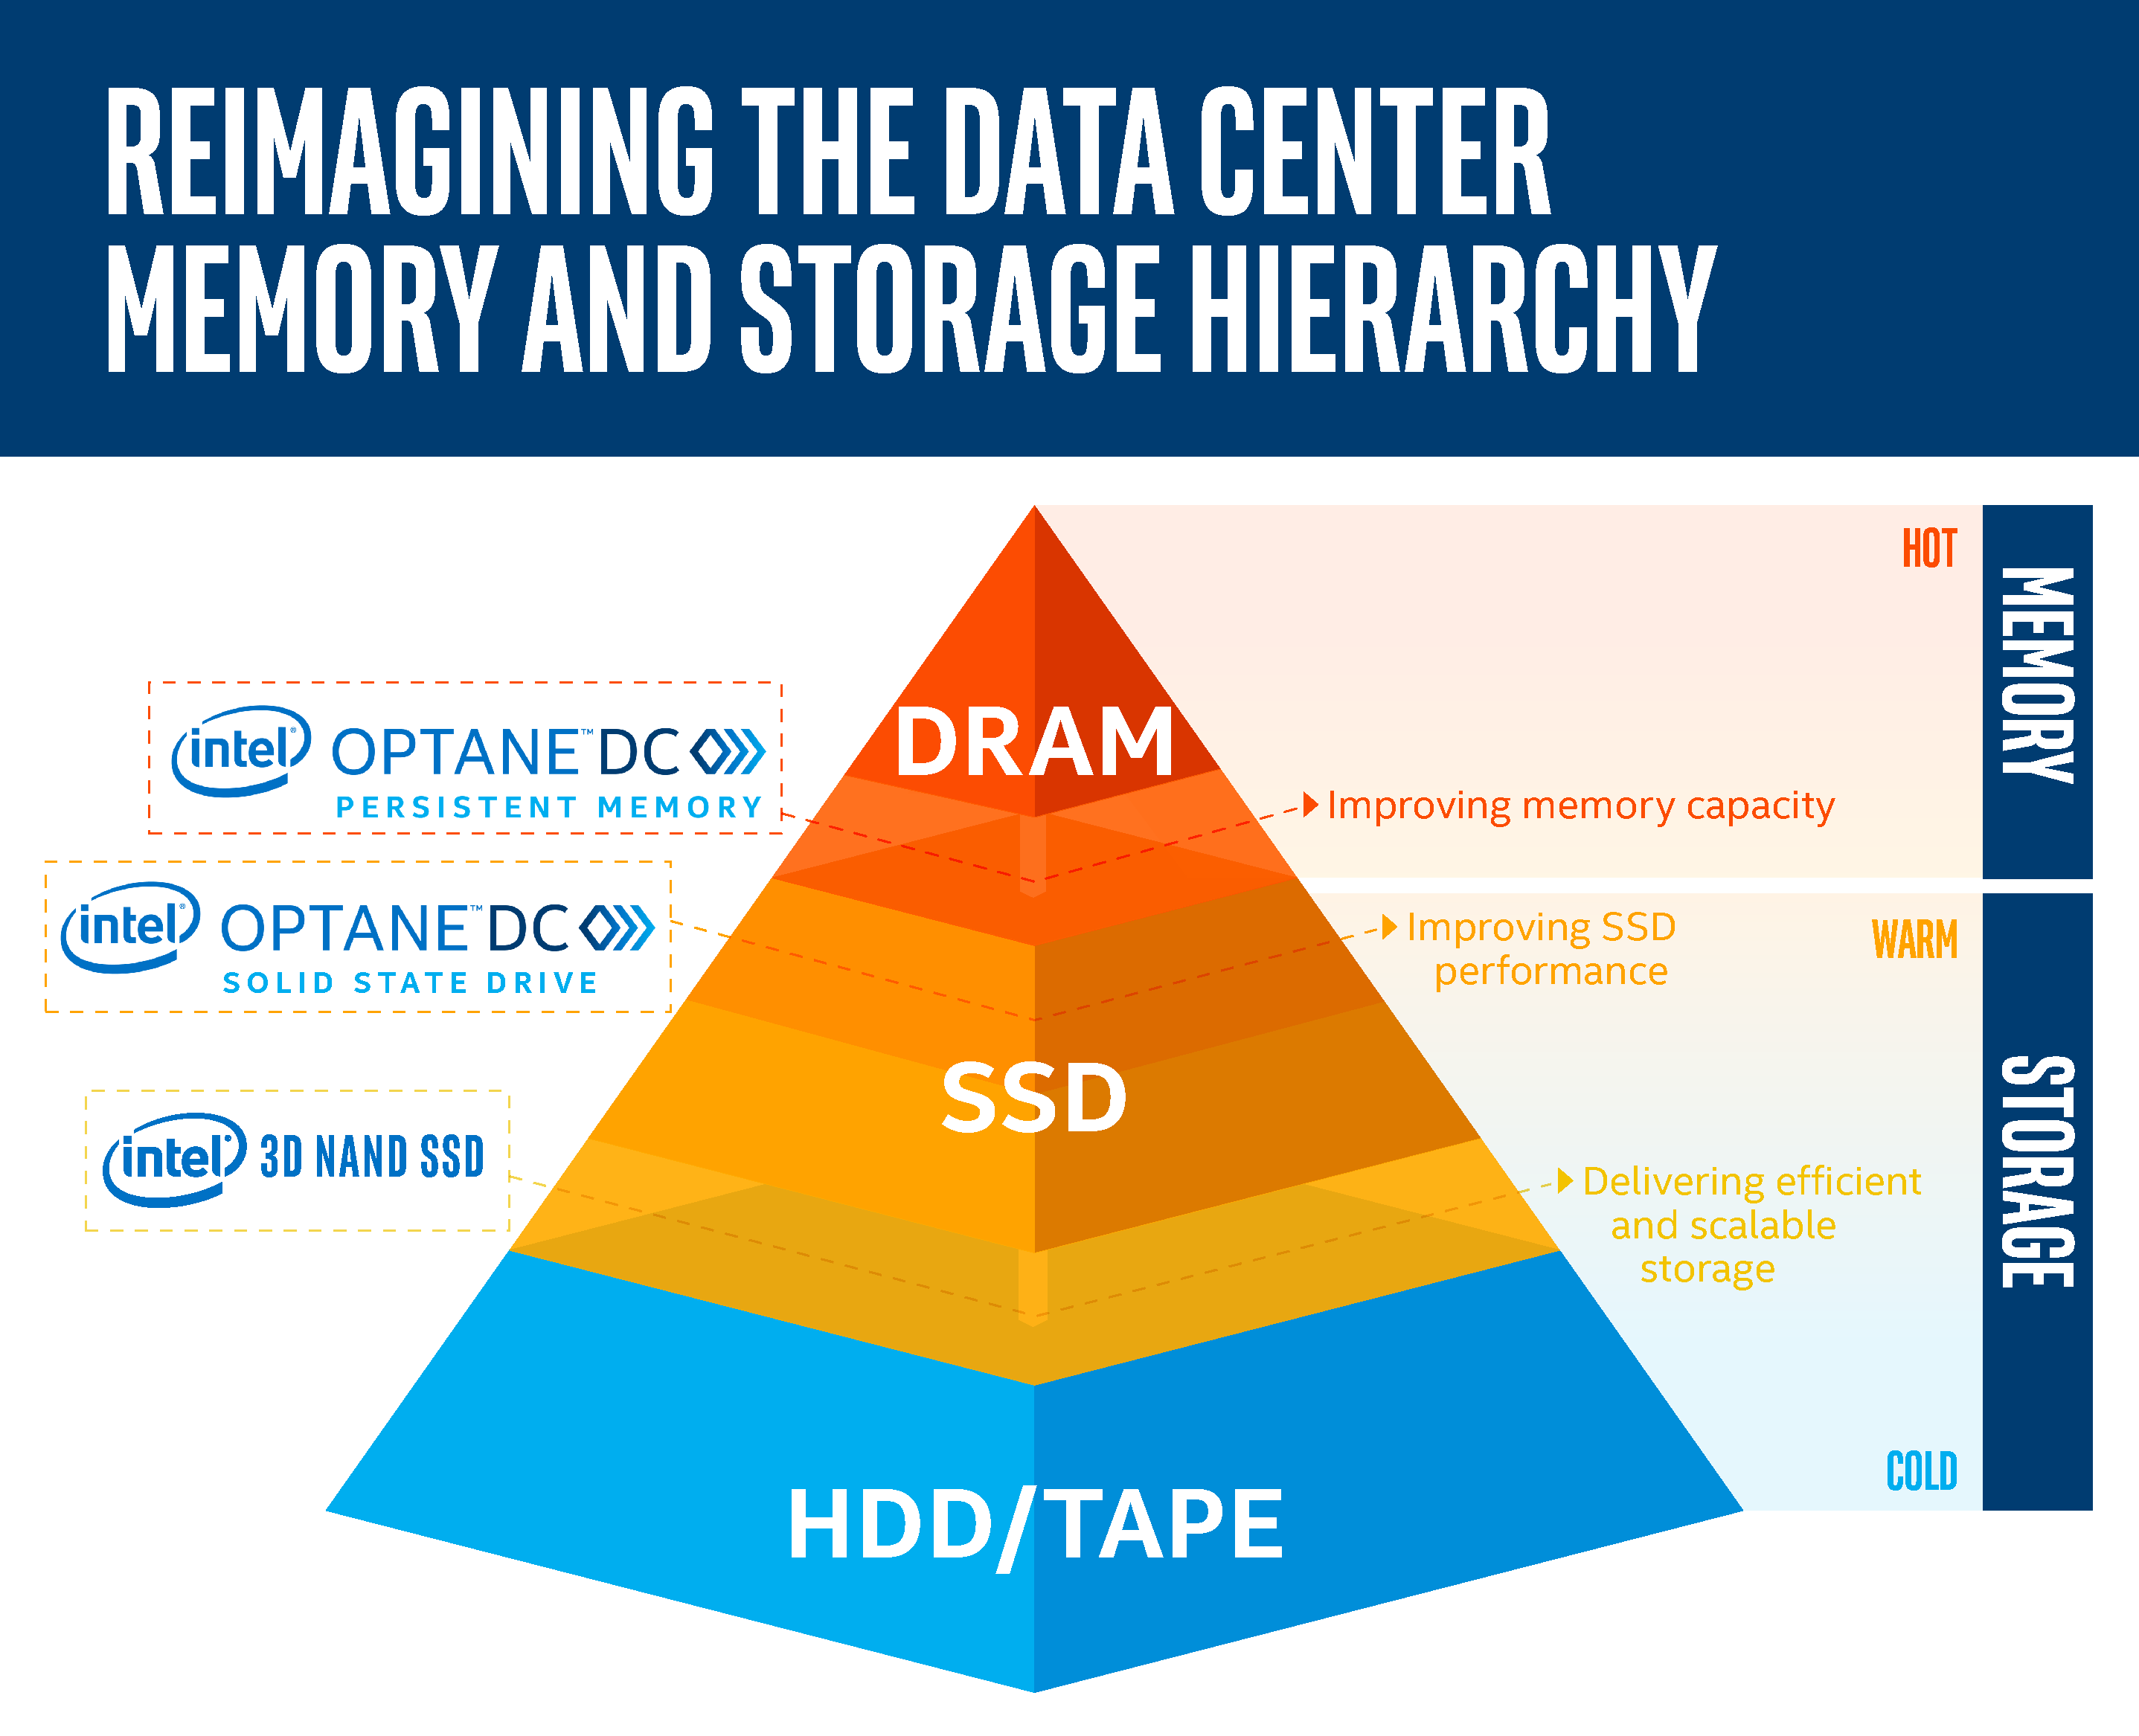 Reimagining The Data Center Memory and Storage Hierarchy